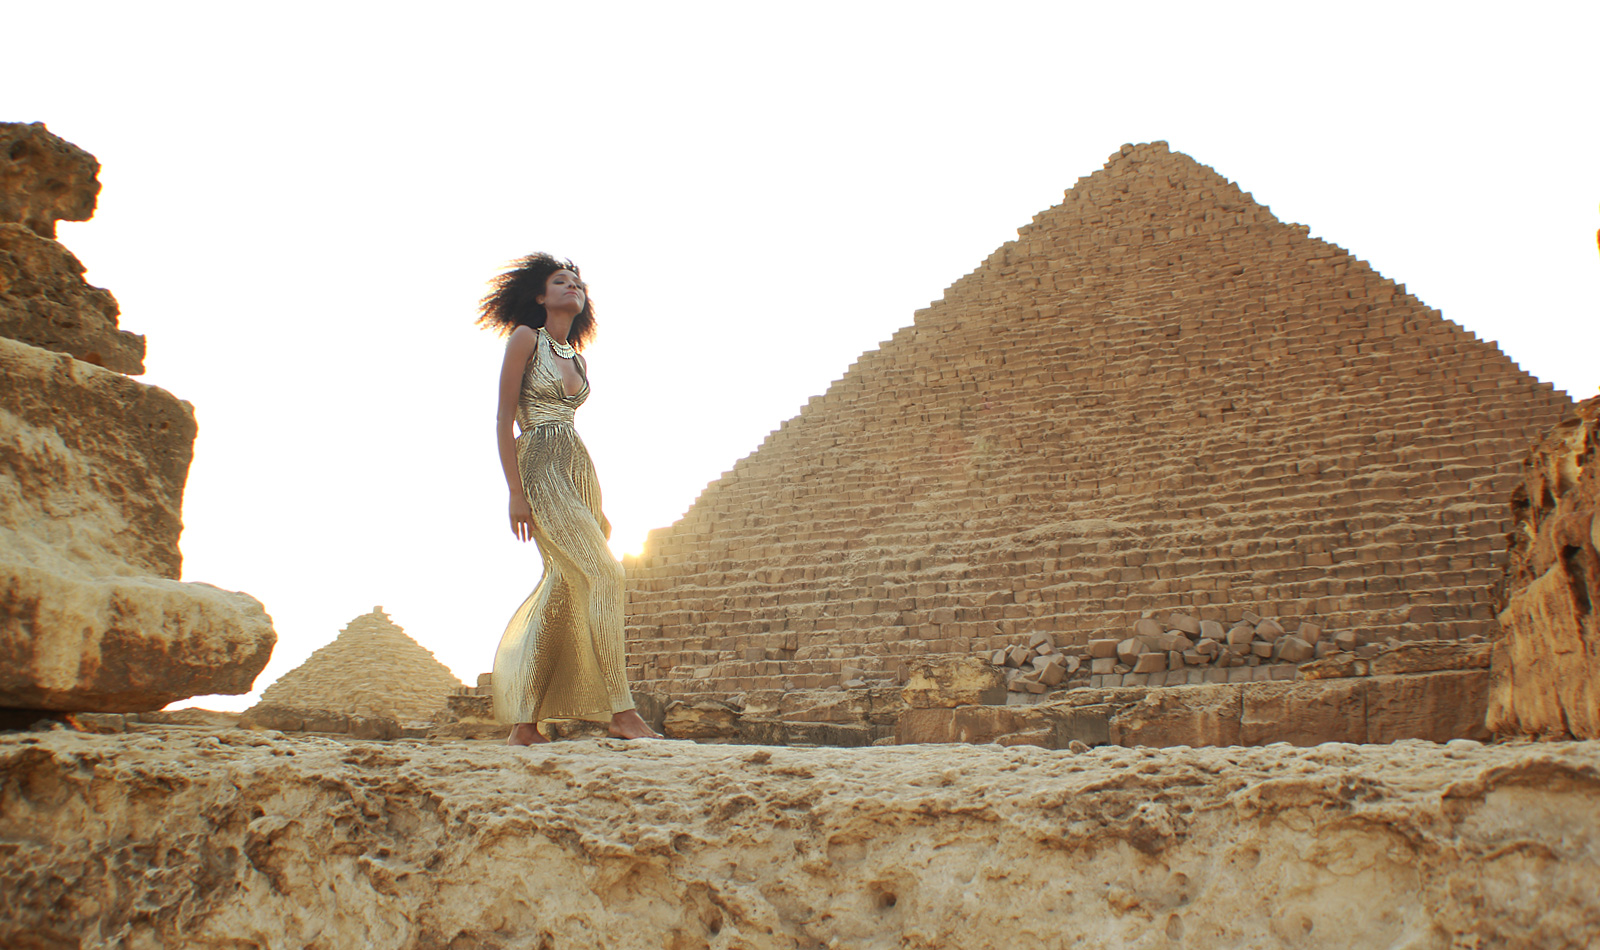 Ndoema in a goddess gold lame gown at the giza pyramids in egypt ndoema in a goddess gold lame gown at the giza pyramids in egypt the global girl kristyandbryce Choice Image